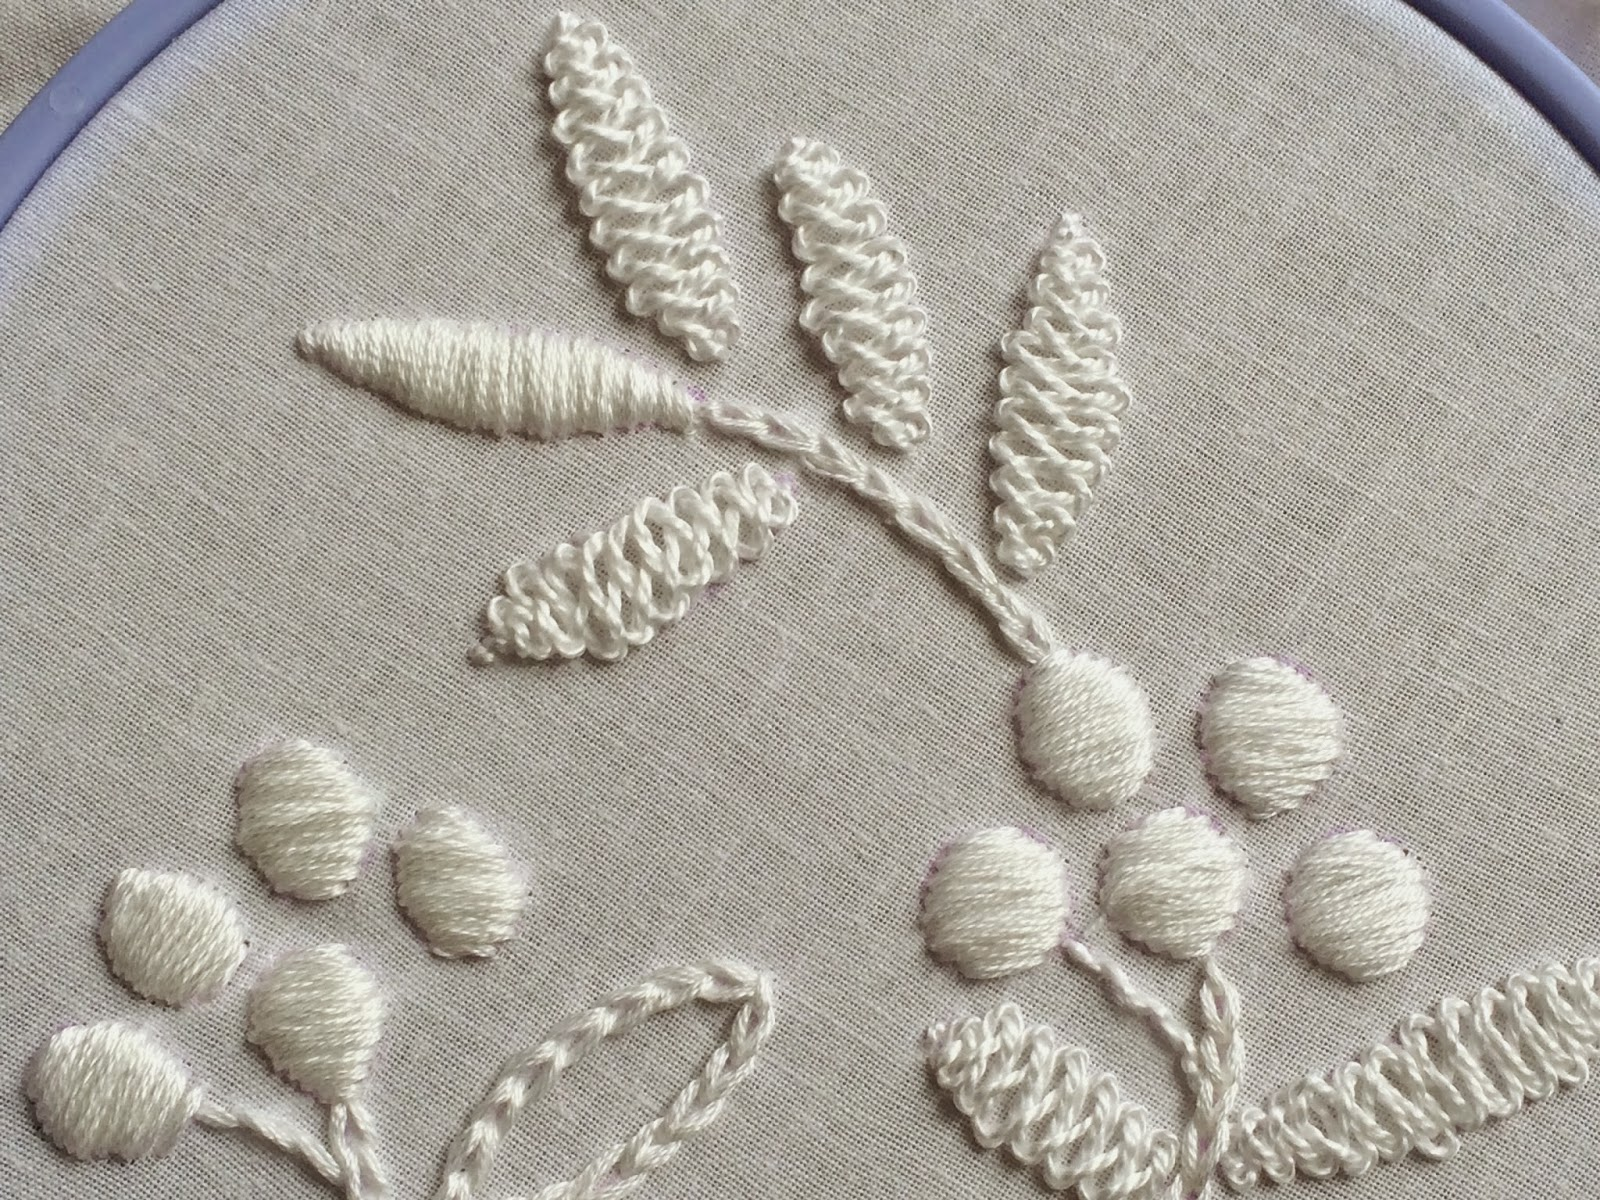 Cable Plait stitch, a tutorial by Michelle for Mooshiestitch Monday on Feeling Stitchy